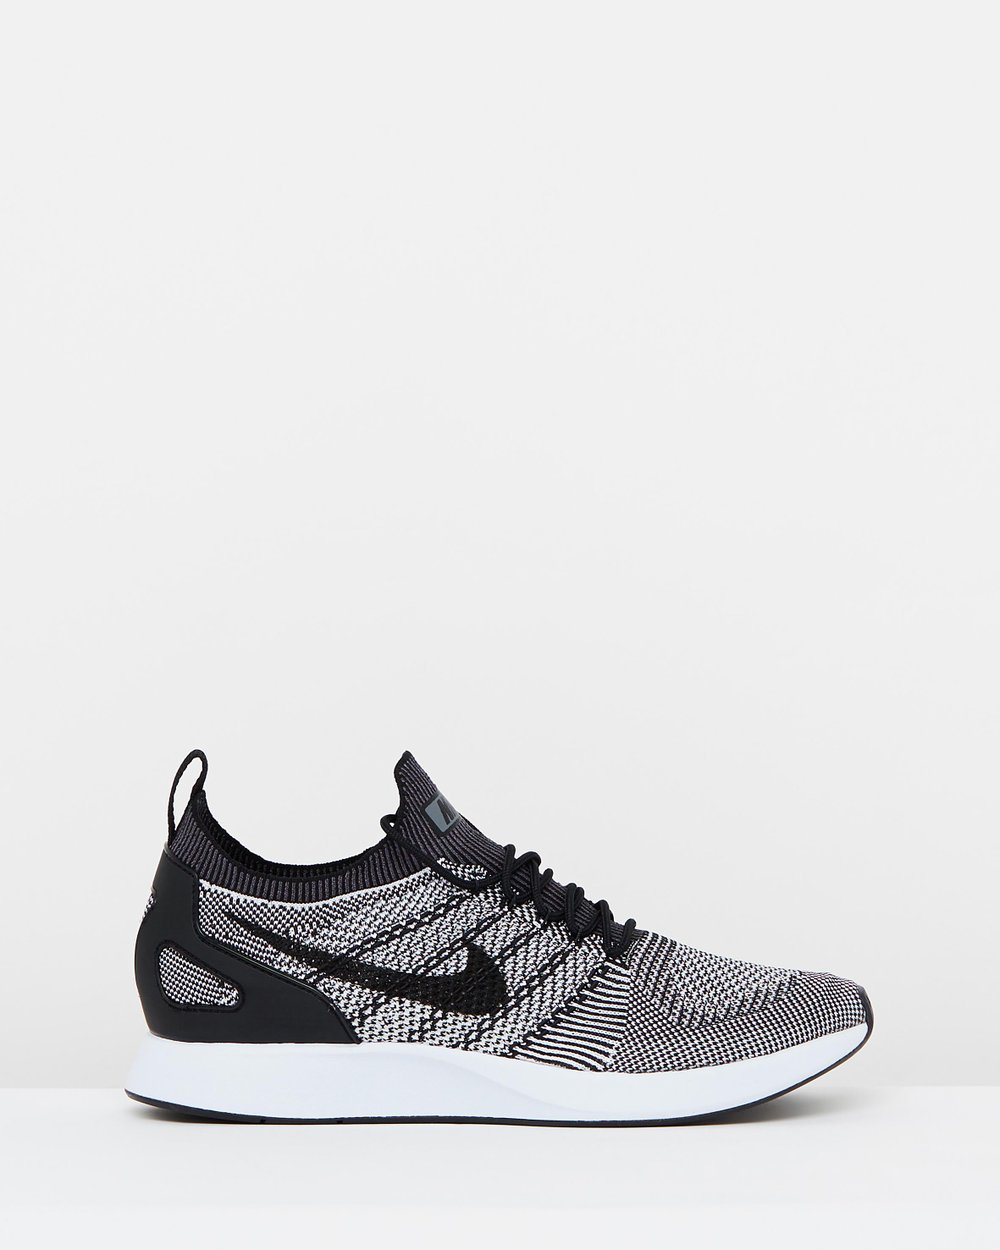 separation shoes eedde 4a9e4 Air Zoom Mariah Flyknit Racer - Men s by Nike Online   THE ICONIC    Australia